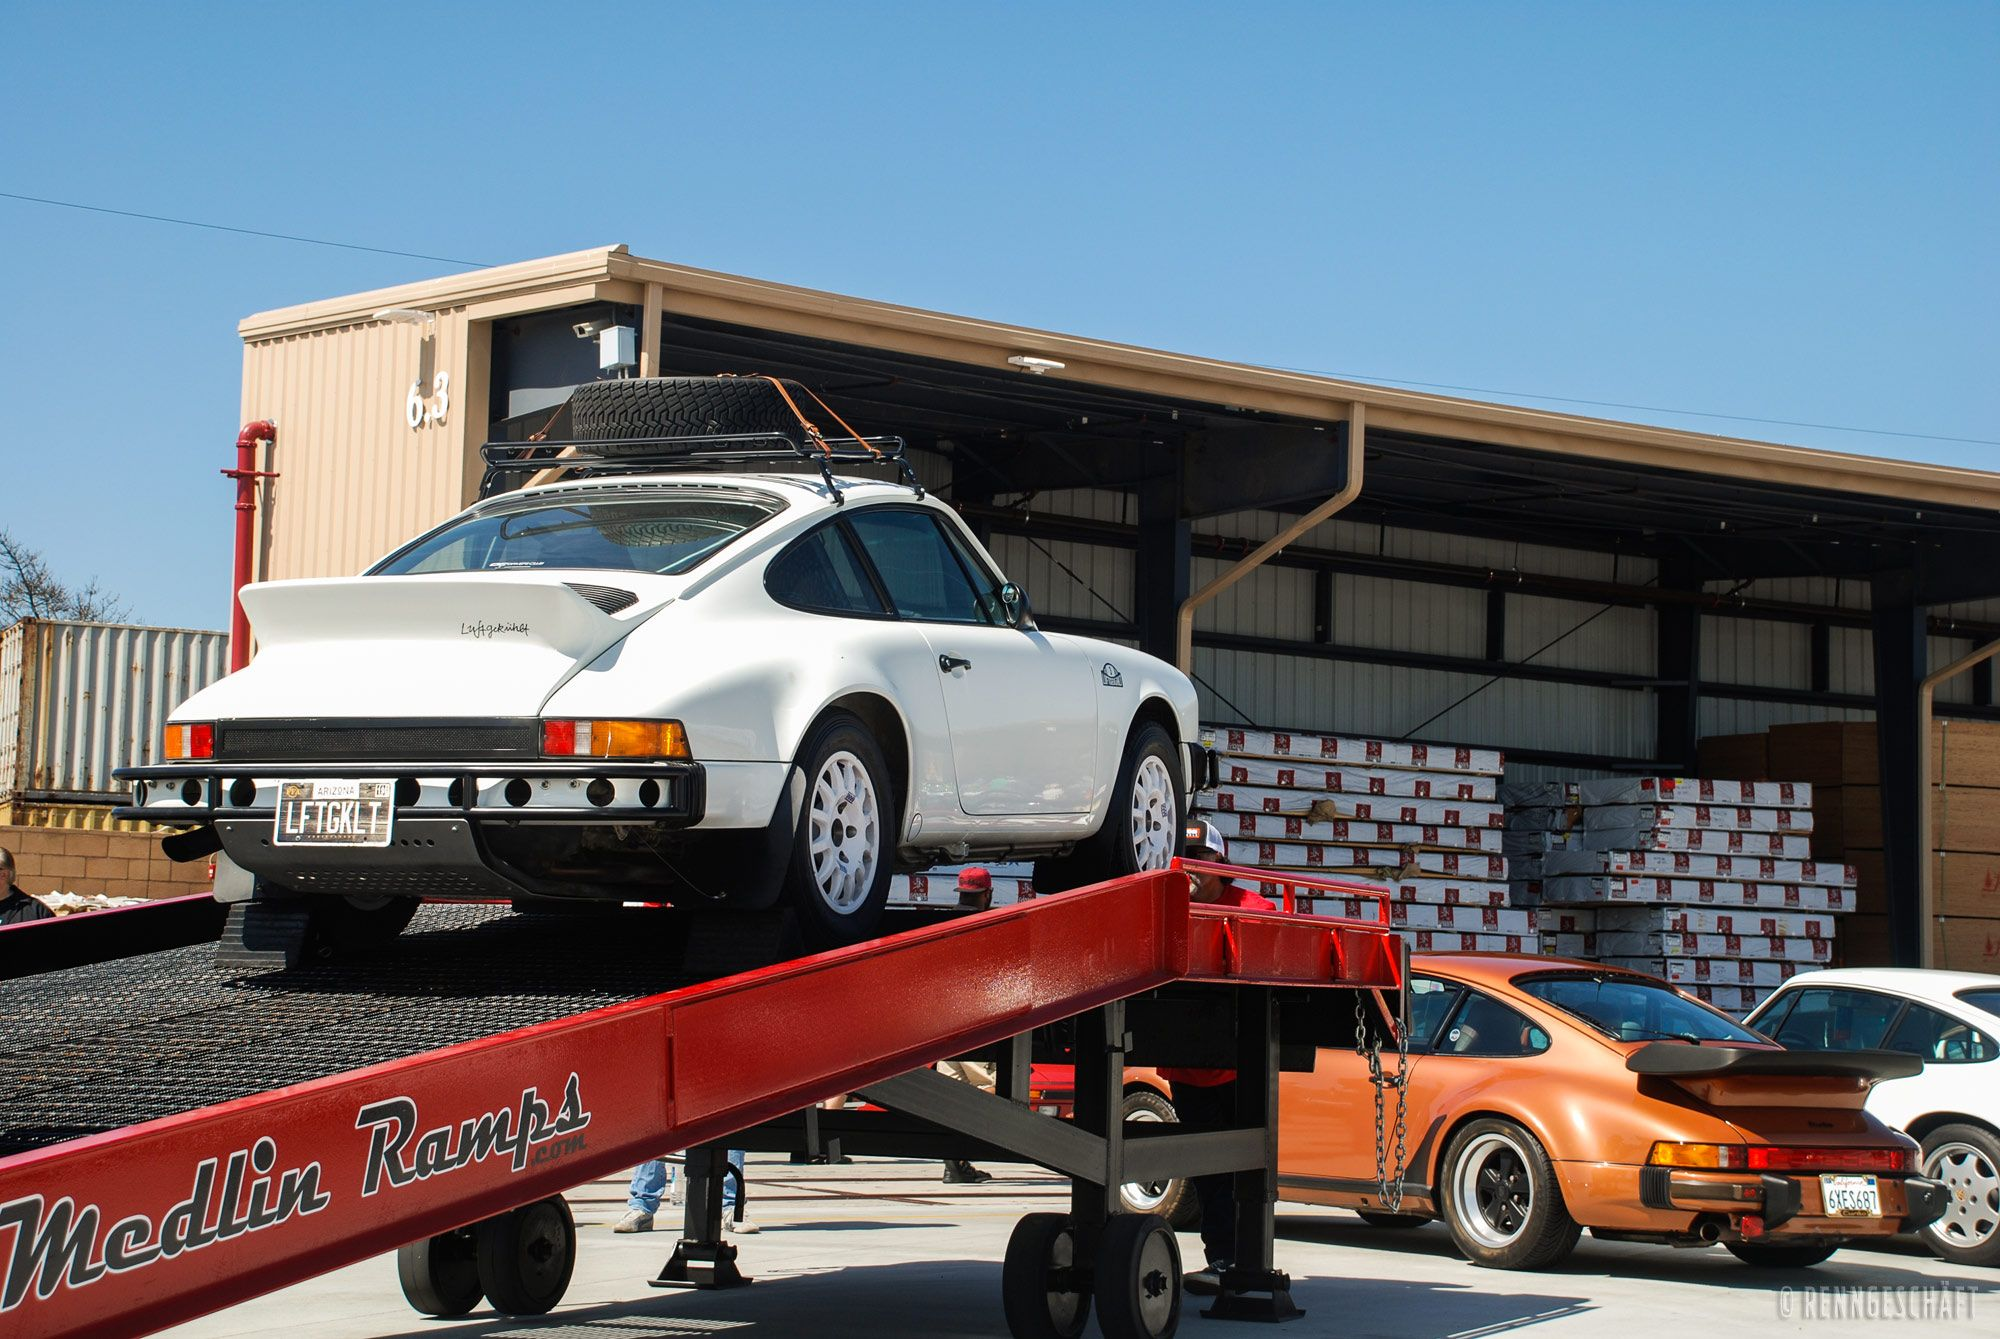 Mobile yard ramp by Medlin Ramps with a white car atop it